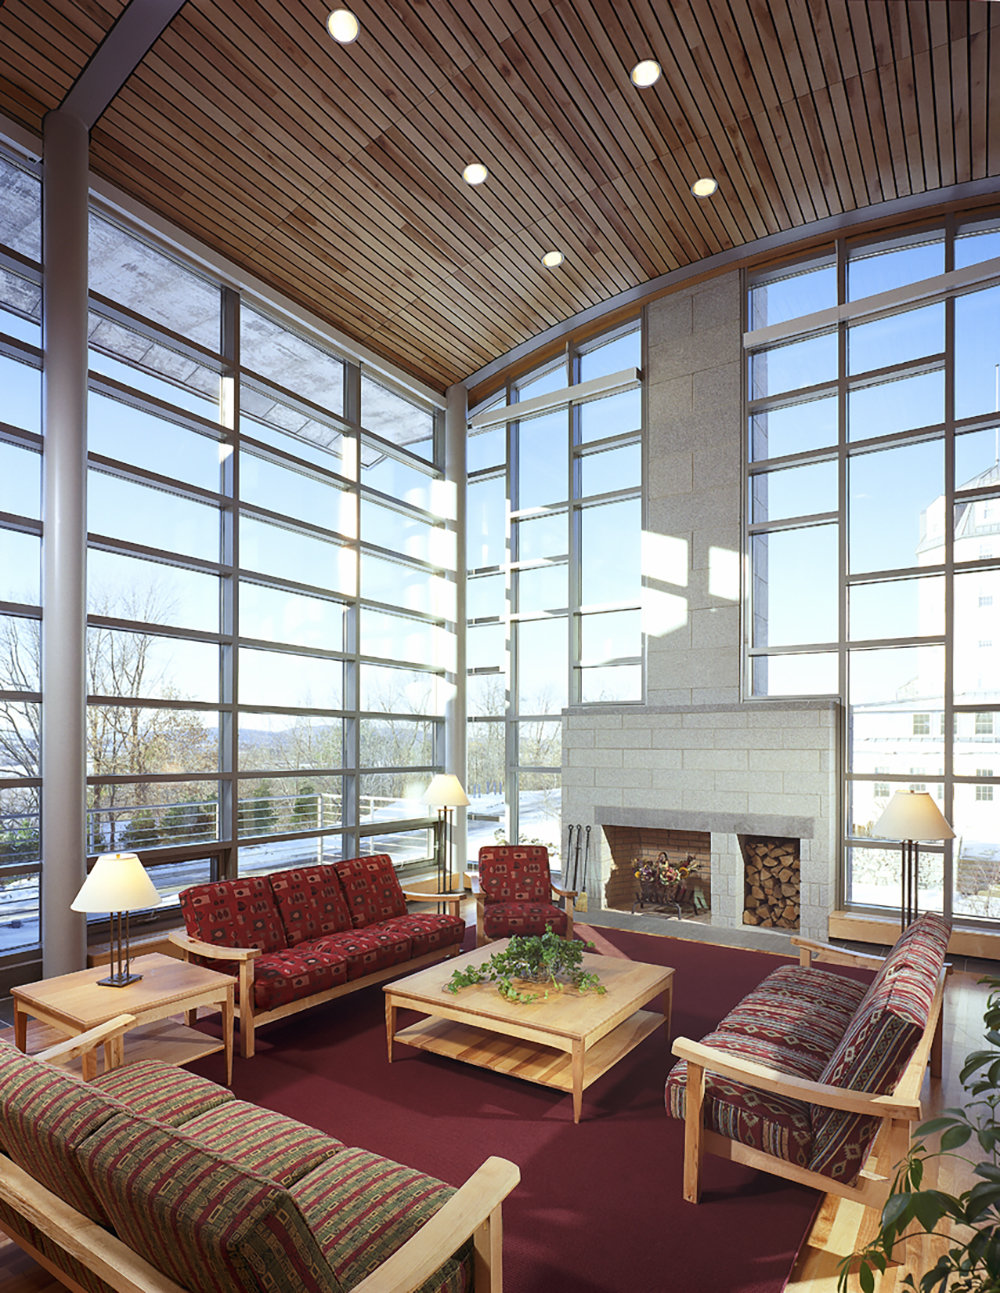 6 tskp middlebury college ross commons laforce hall interior detail lounge area with fireplace 1400 xxx q85